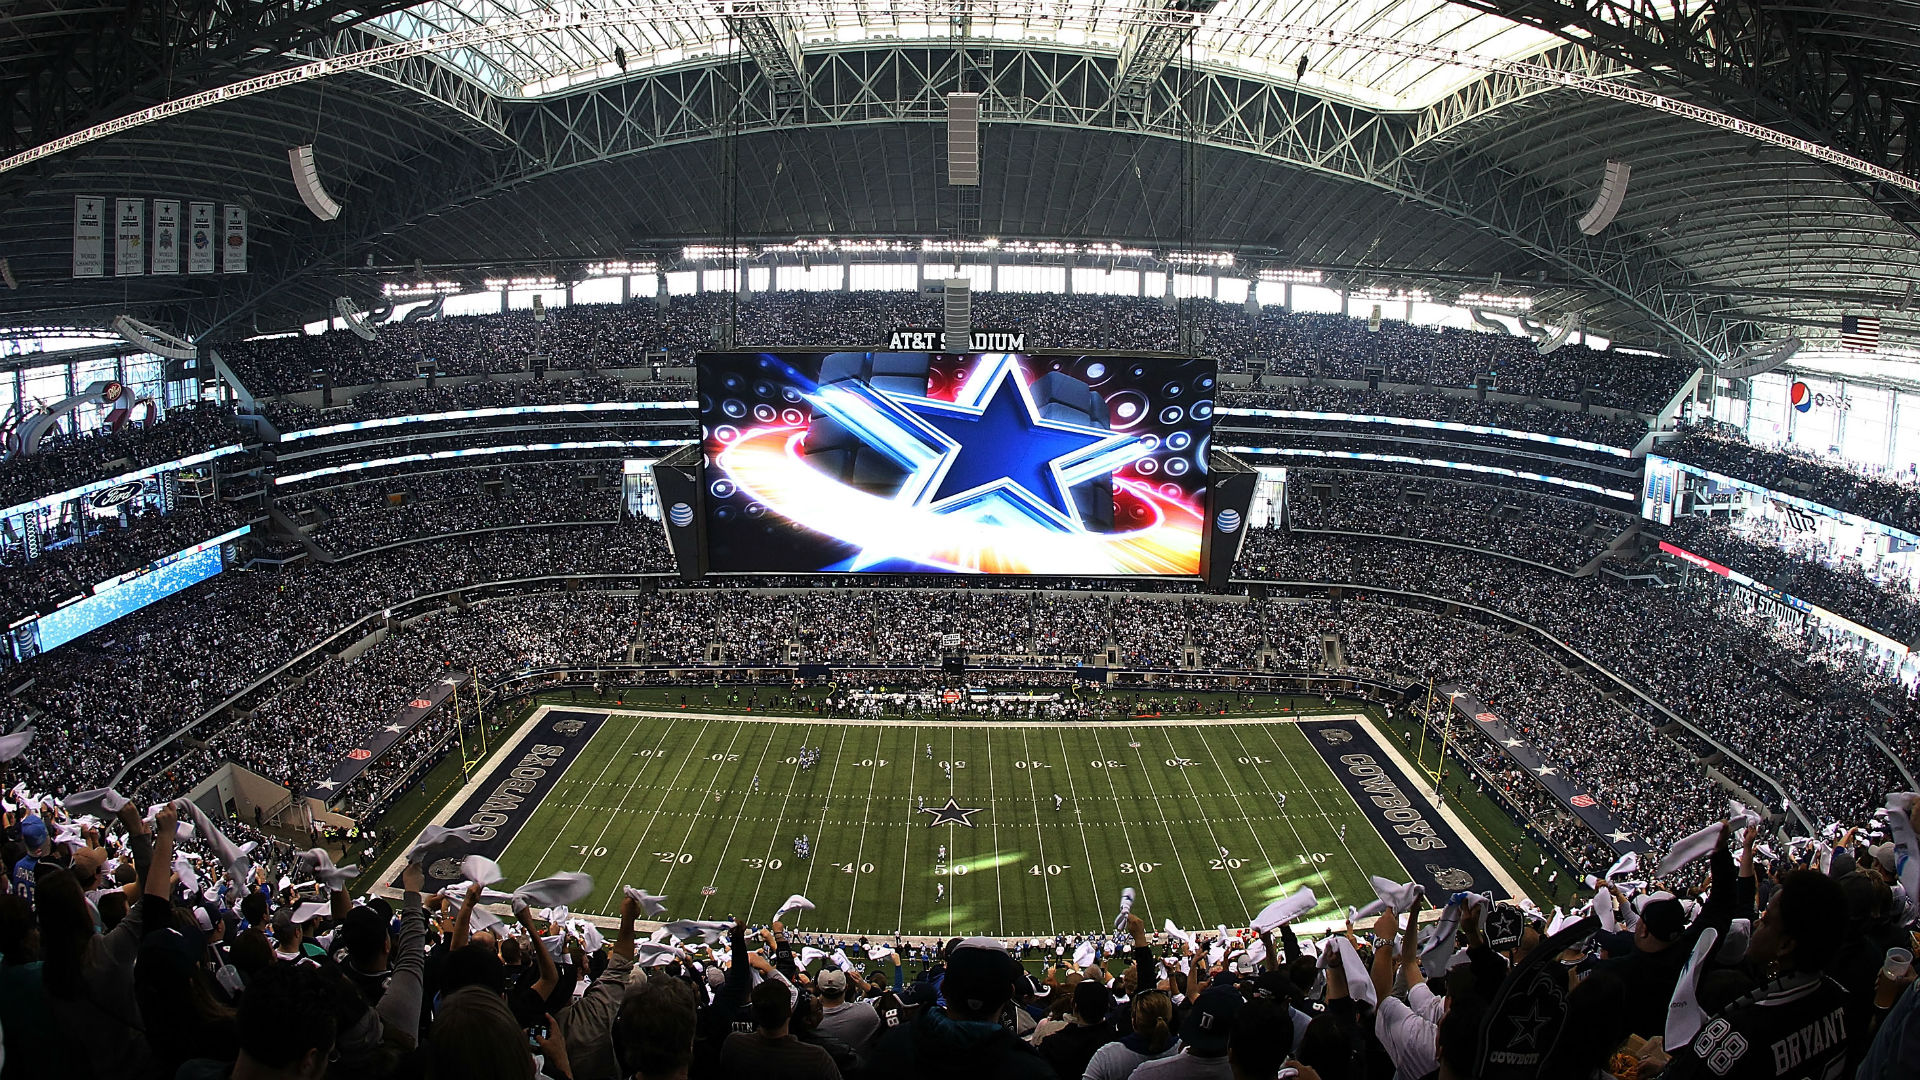 Cowboys Headlines - Why I Hate The Dallas Cowboys